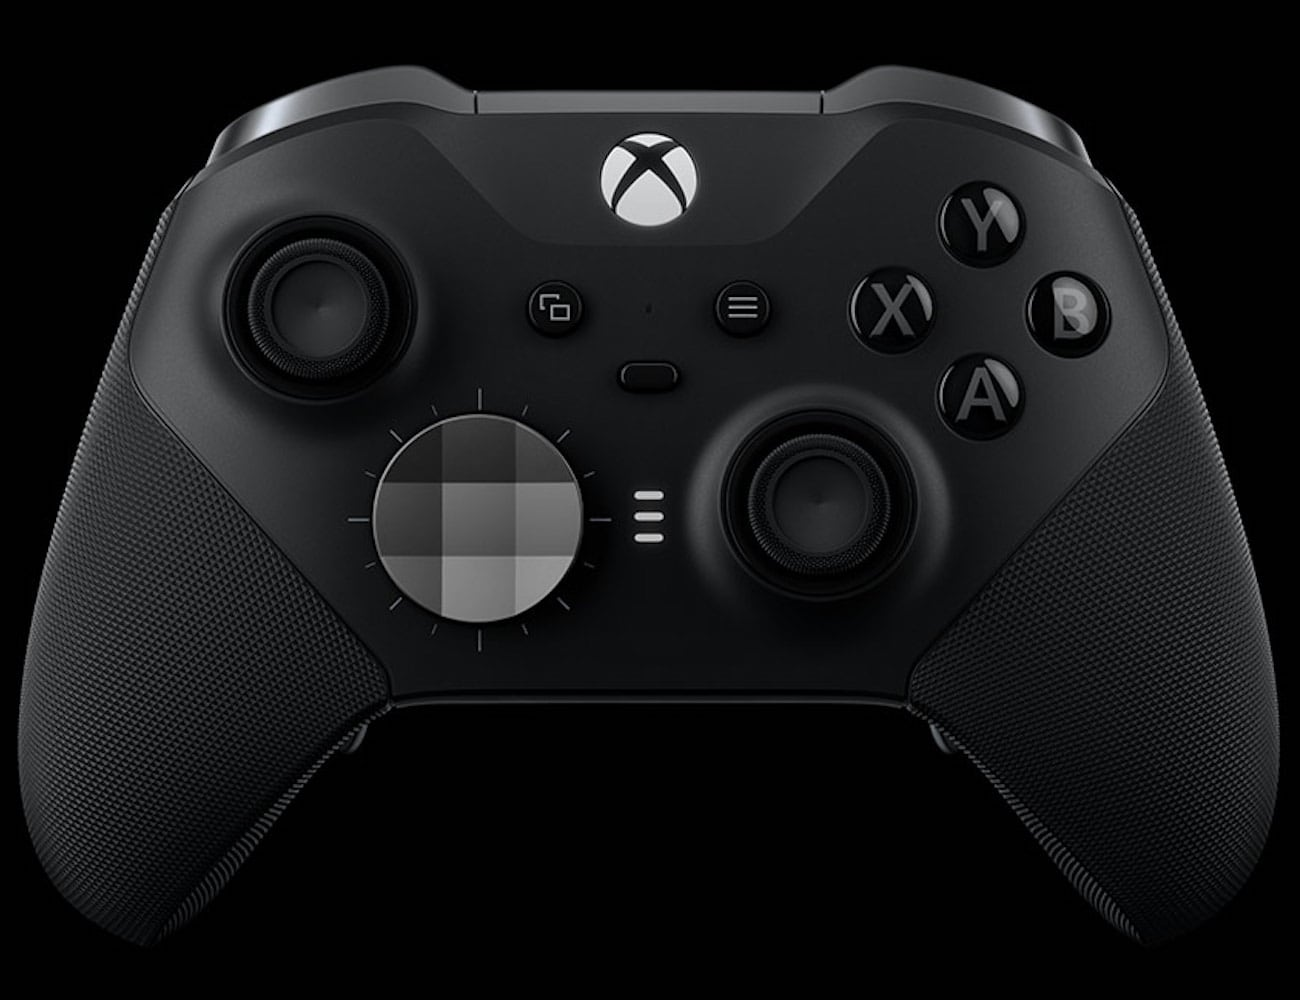 Microsoft Xbox Elite Wireless Controller Series 2 Customizable Gaming Controller lets you game like a professional